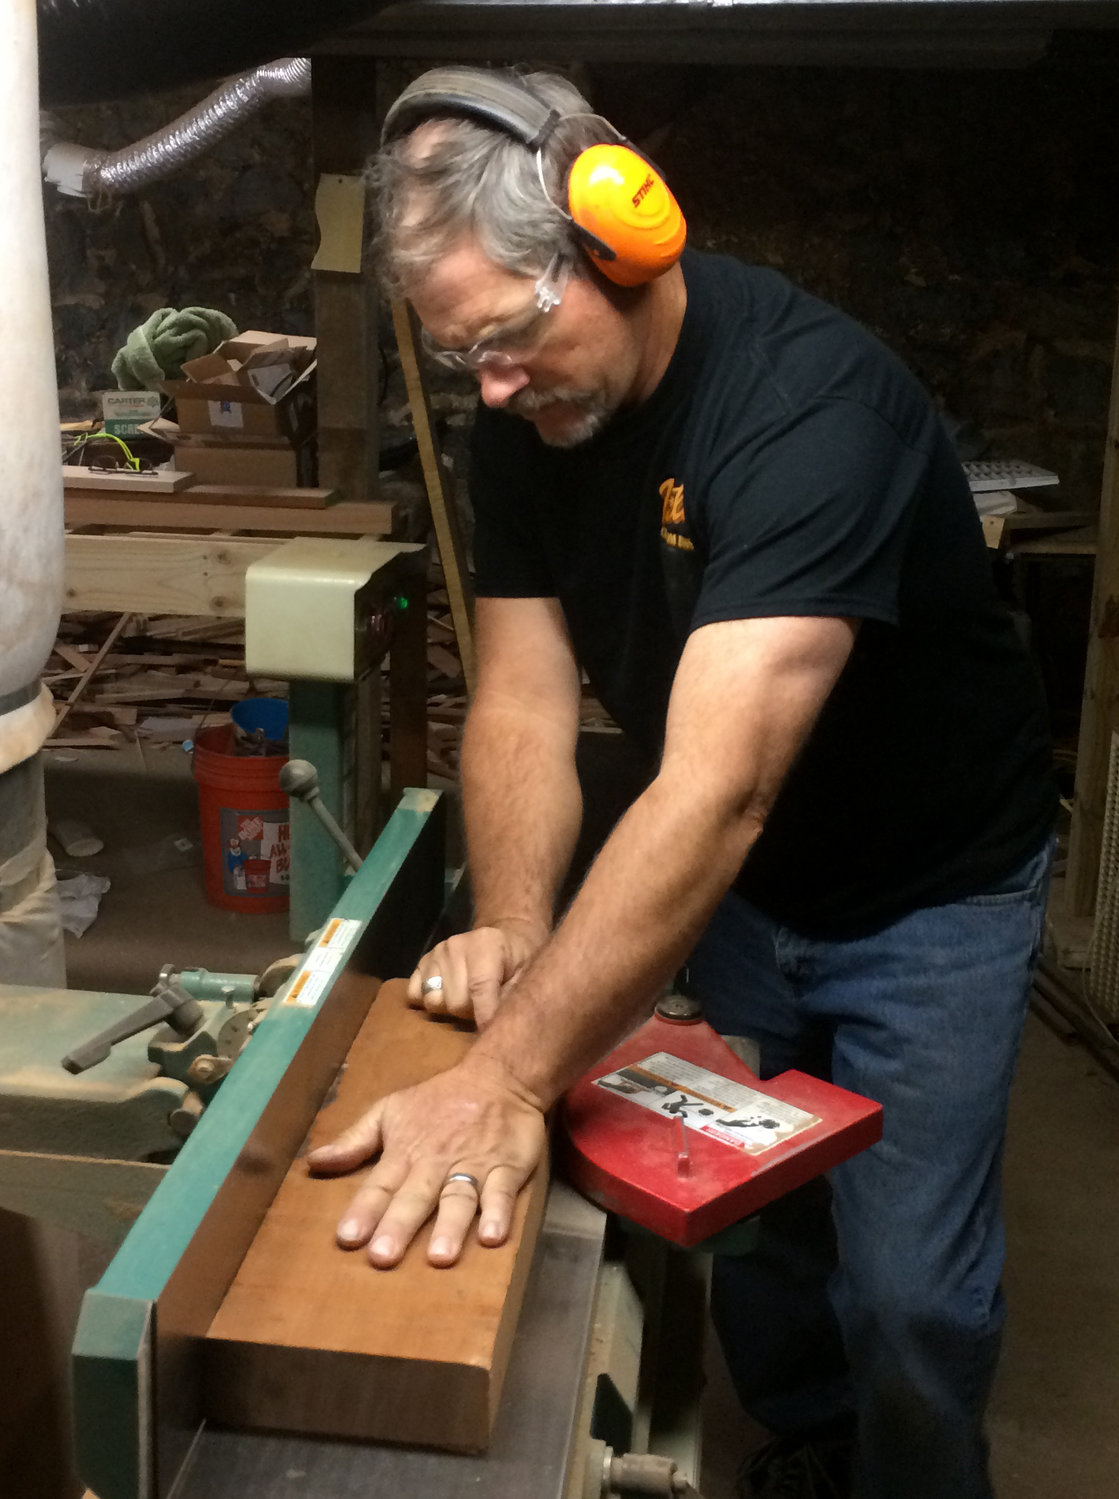 Darryl Betts works on a piece of wood that has been cut down to fit one of the body wings of a bass guitar. Here he is joining the piece to get it perfectly flat and square, before planing to thickness and marking with a template to cut the piece out.